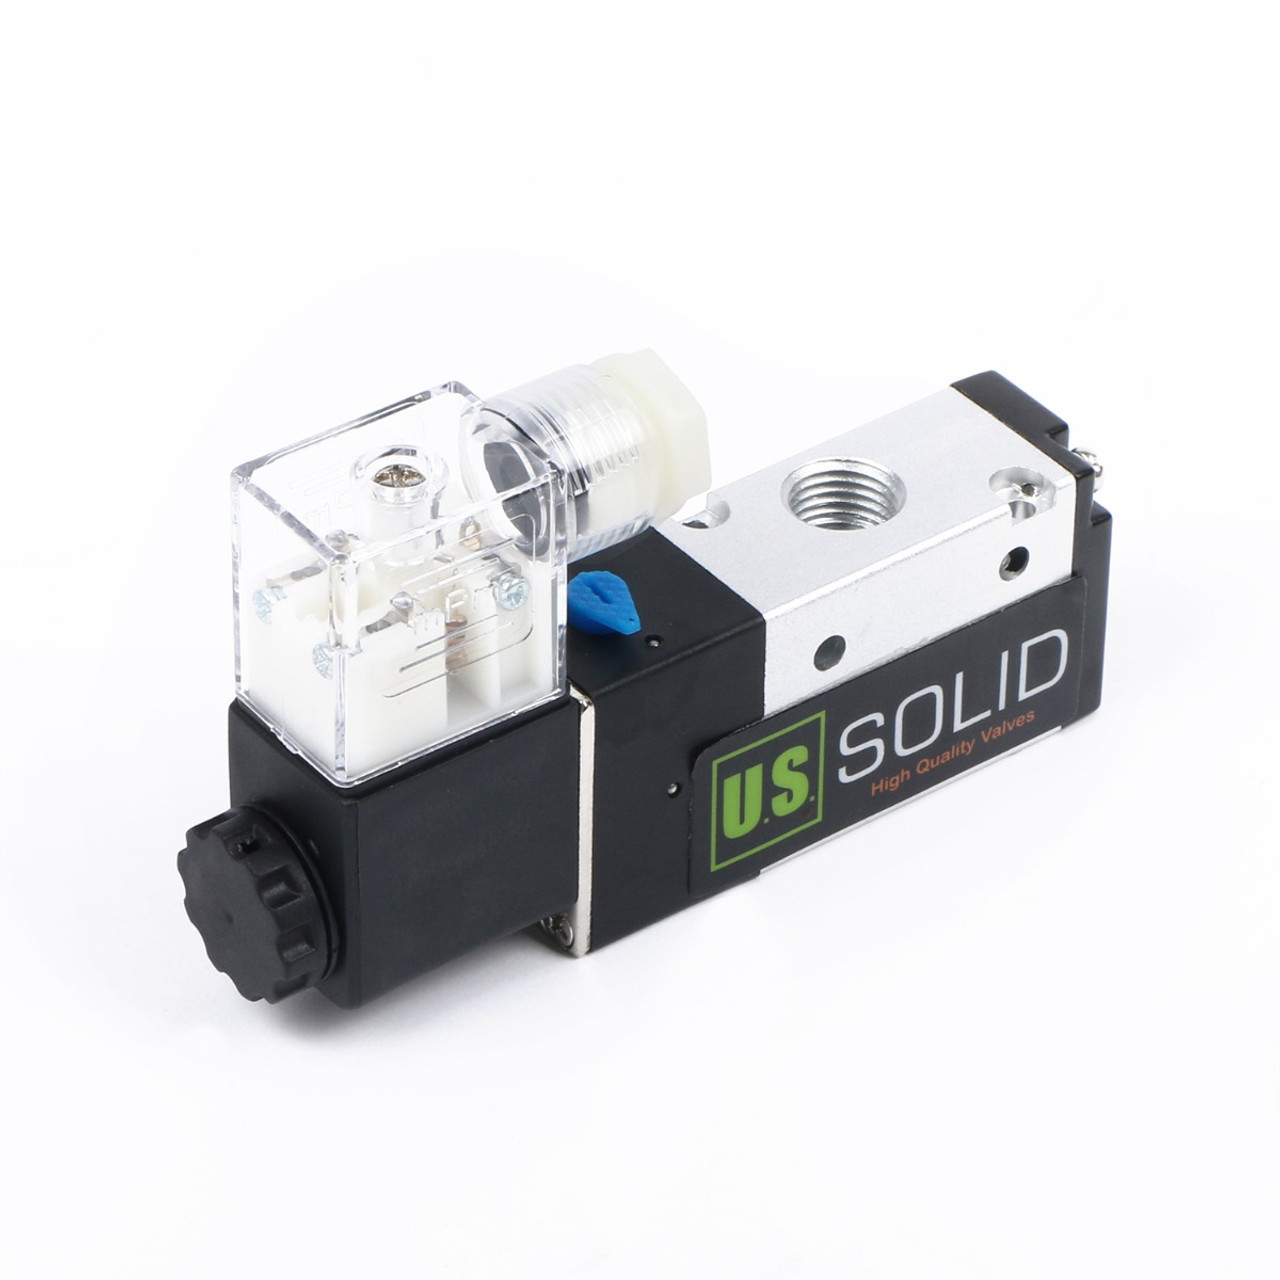 small resolution of ussolid 1 4 3 way 2 position pneumatic electric solenoid valve dc